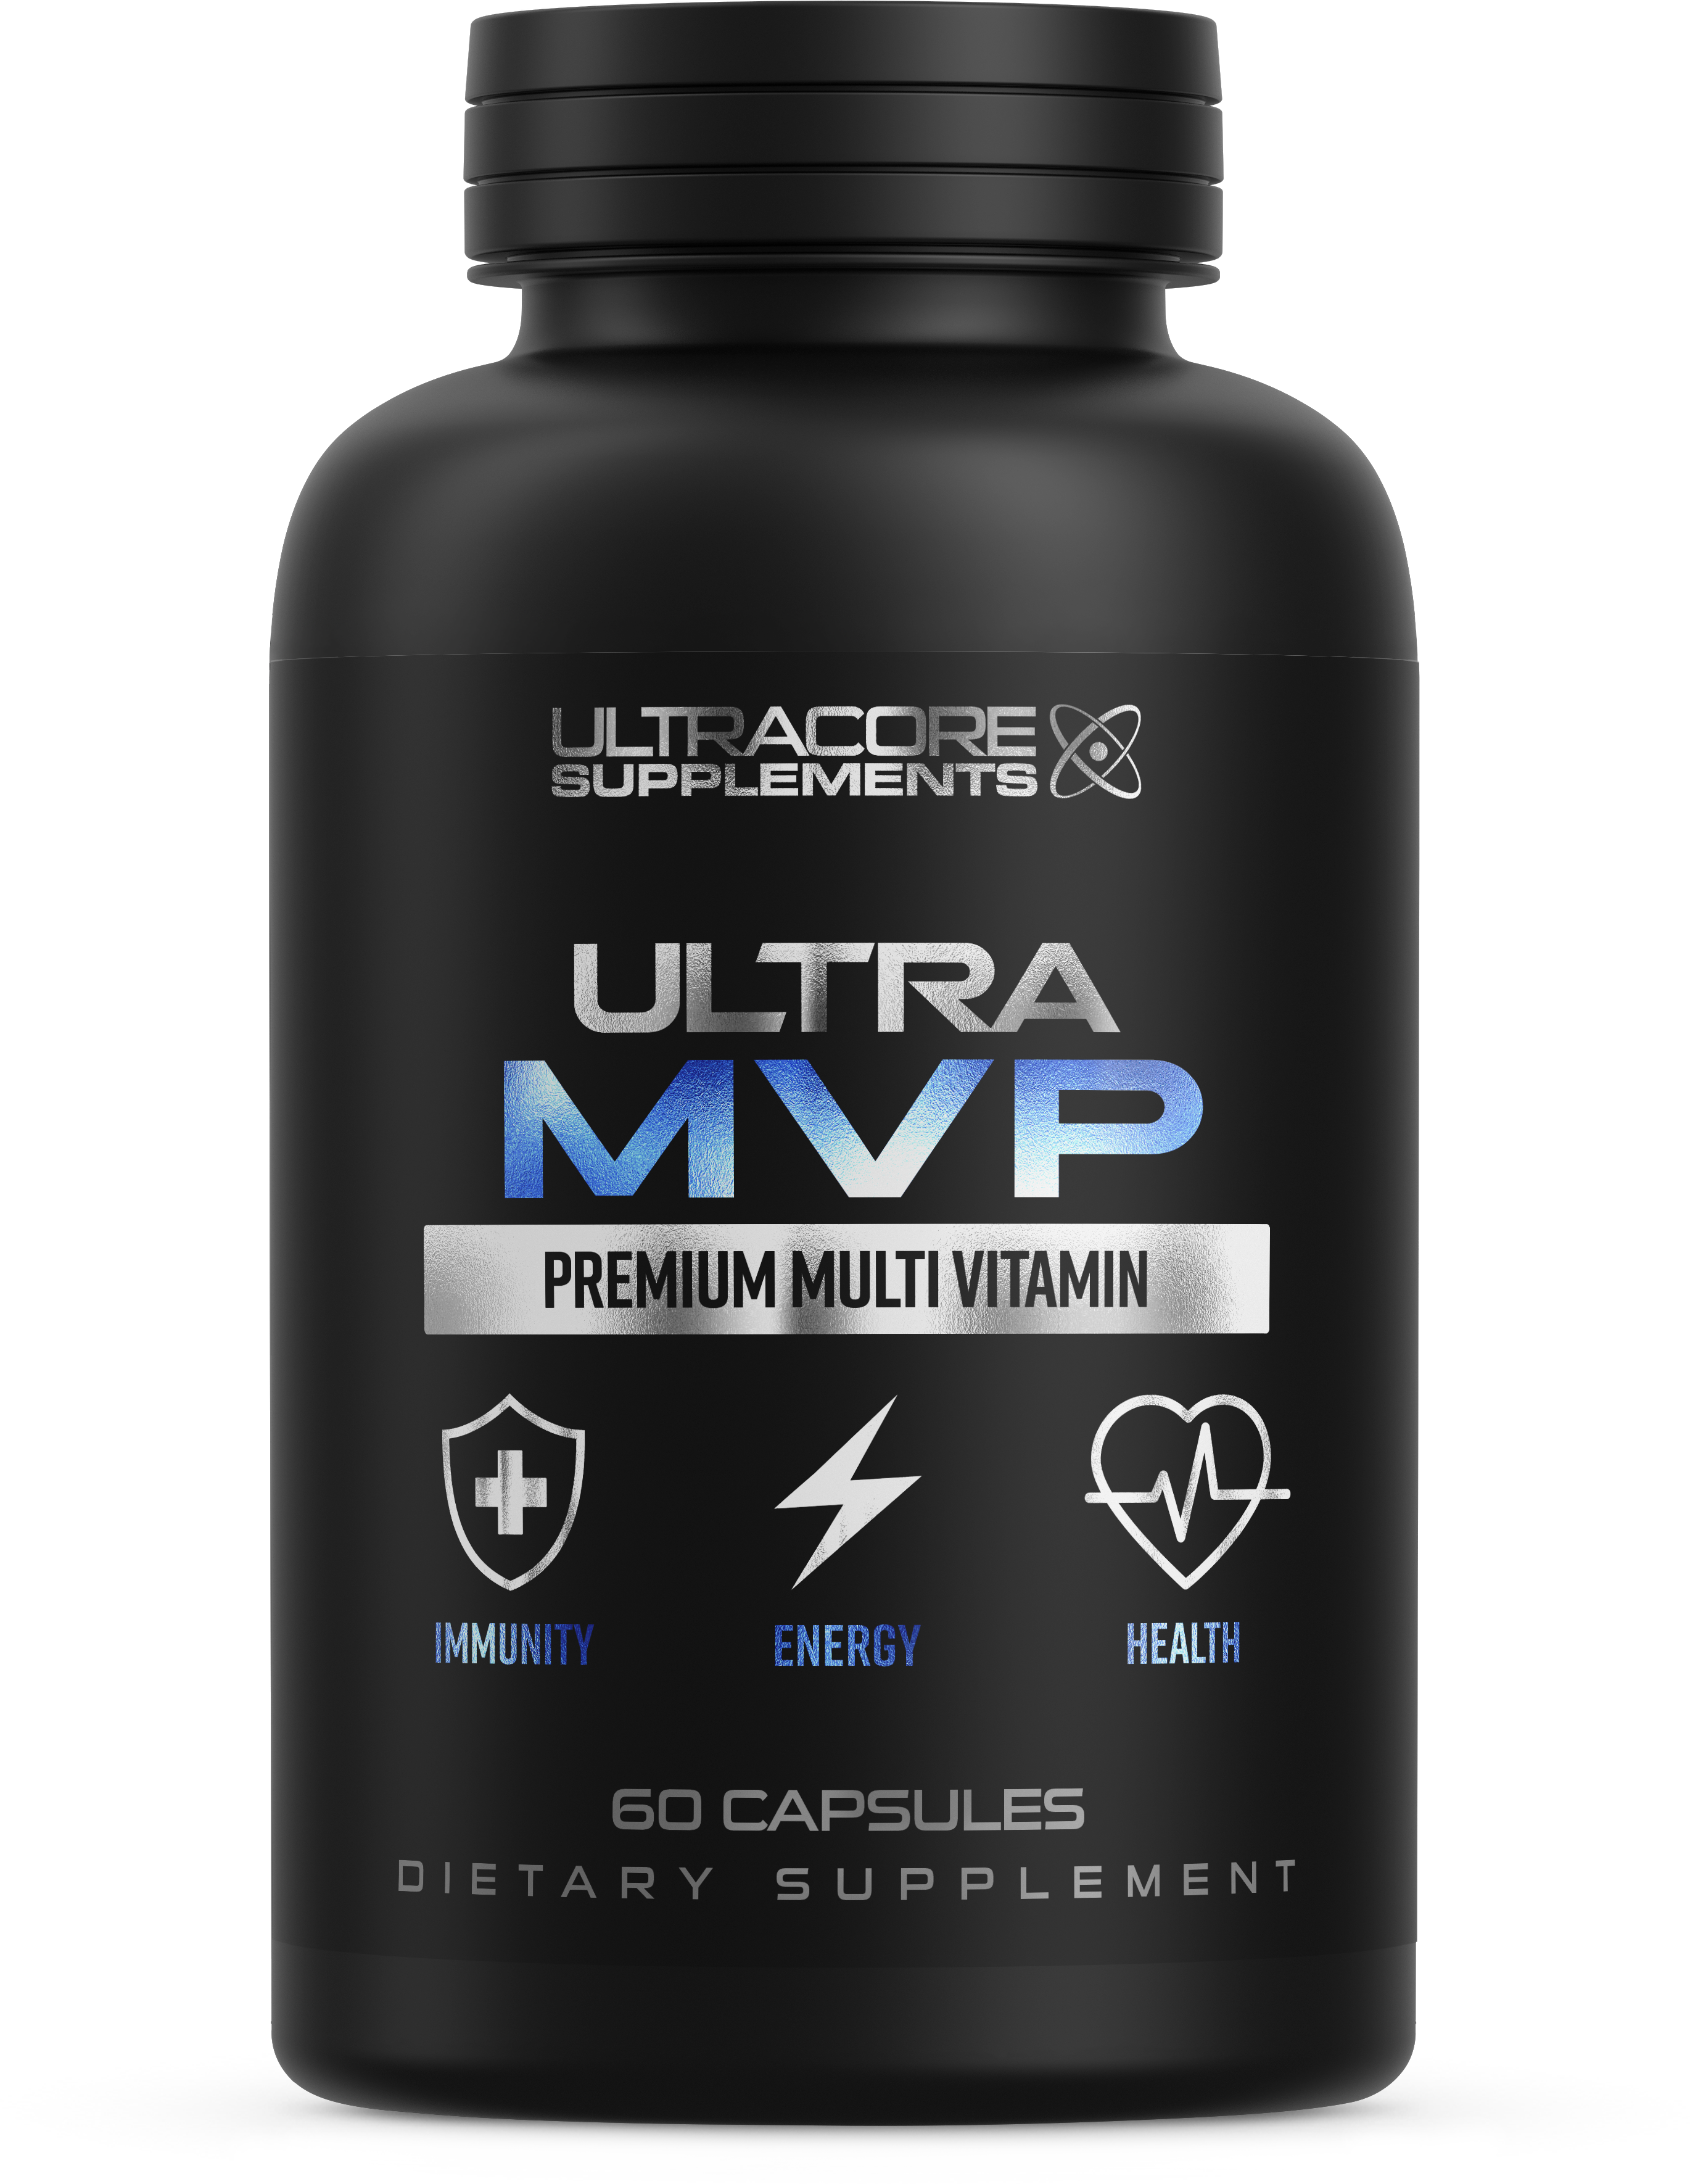 Ultra MVPReview: Is This Multivitamin SupplementfromUltraCoreSupplementsWorth It?